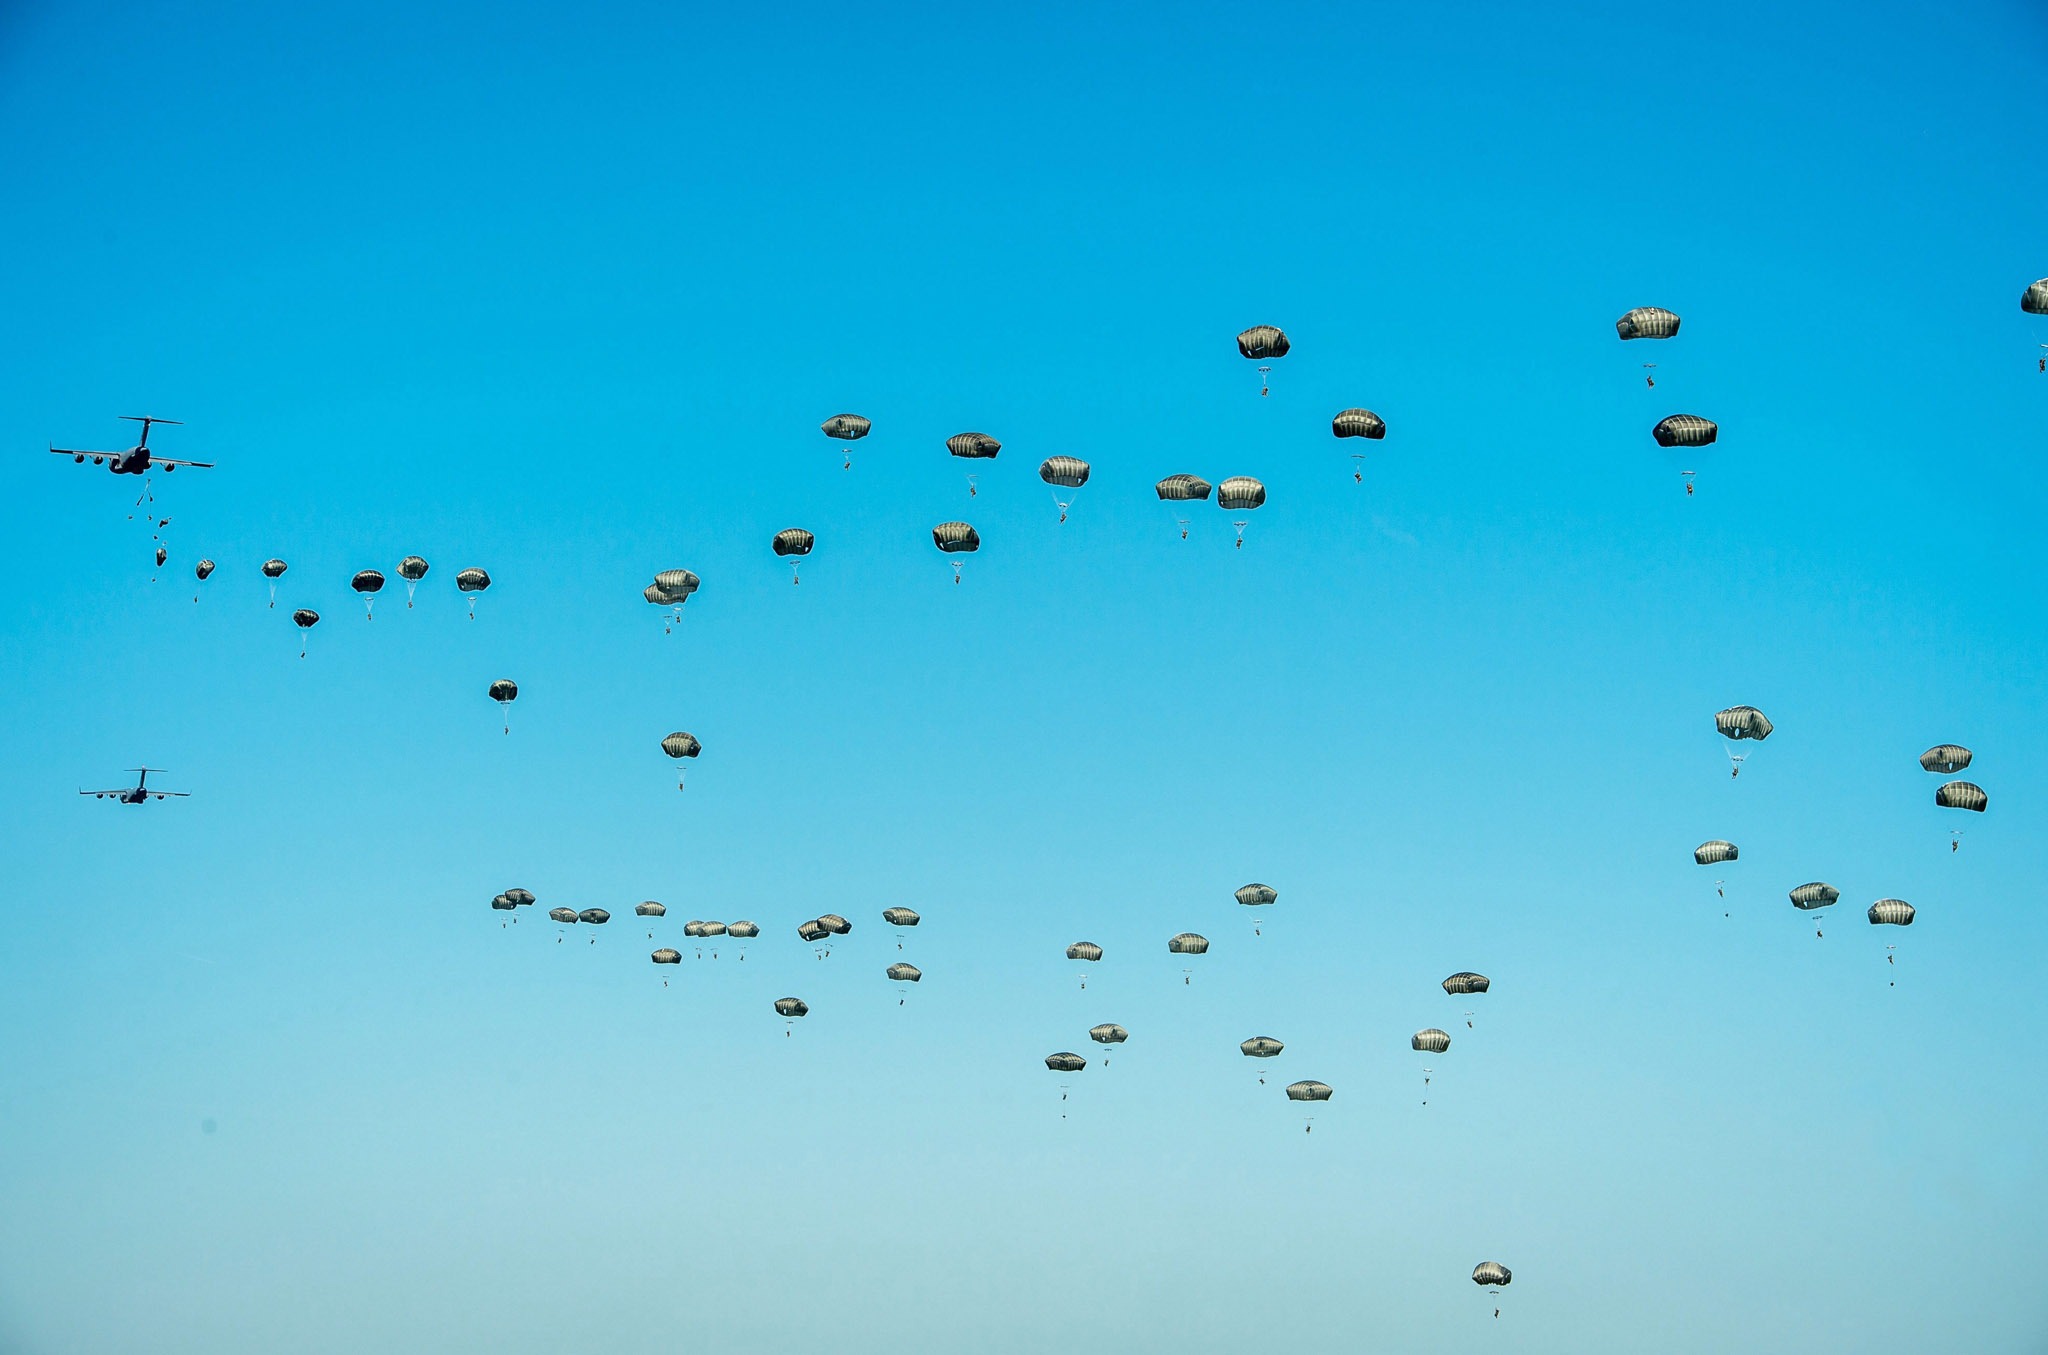 epa05350322 US Army C-17 Globemaster military transport planes drop US paratroopers from the 82 Airborne Division during the Swift Response-16 part of the NATO Anaconda-16 exercise at the military area near Torun, Poland, 07 June 2016.  About 2 thousand paratroopers from Poland, USA and Great Britain took part in a landing exercise as part of the The Polish-led multinational exercise Anaconda-16, conducted with allies and partners from 24 countries between 07 and 17 June 2016, which is to test and enhance the capabilities of NATO countries to quickly respond to threats regardless of distance and origin.  EPA/TYTUS ZMIJEWSKI POLAND OUT